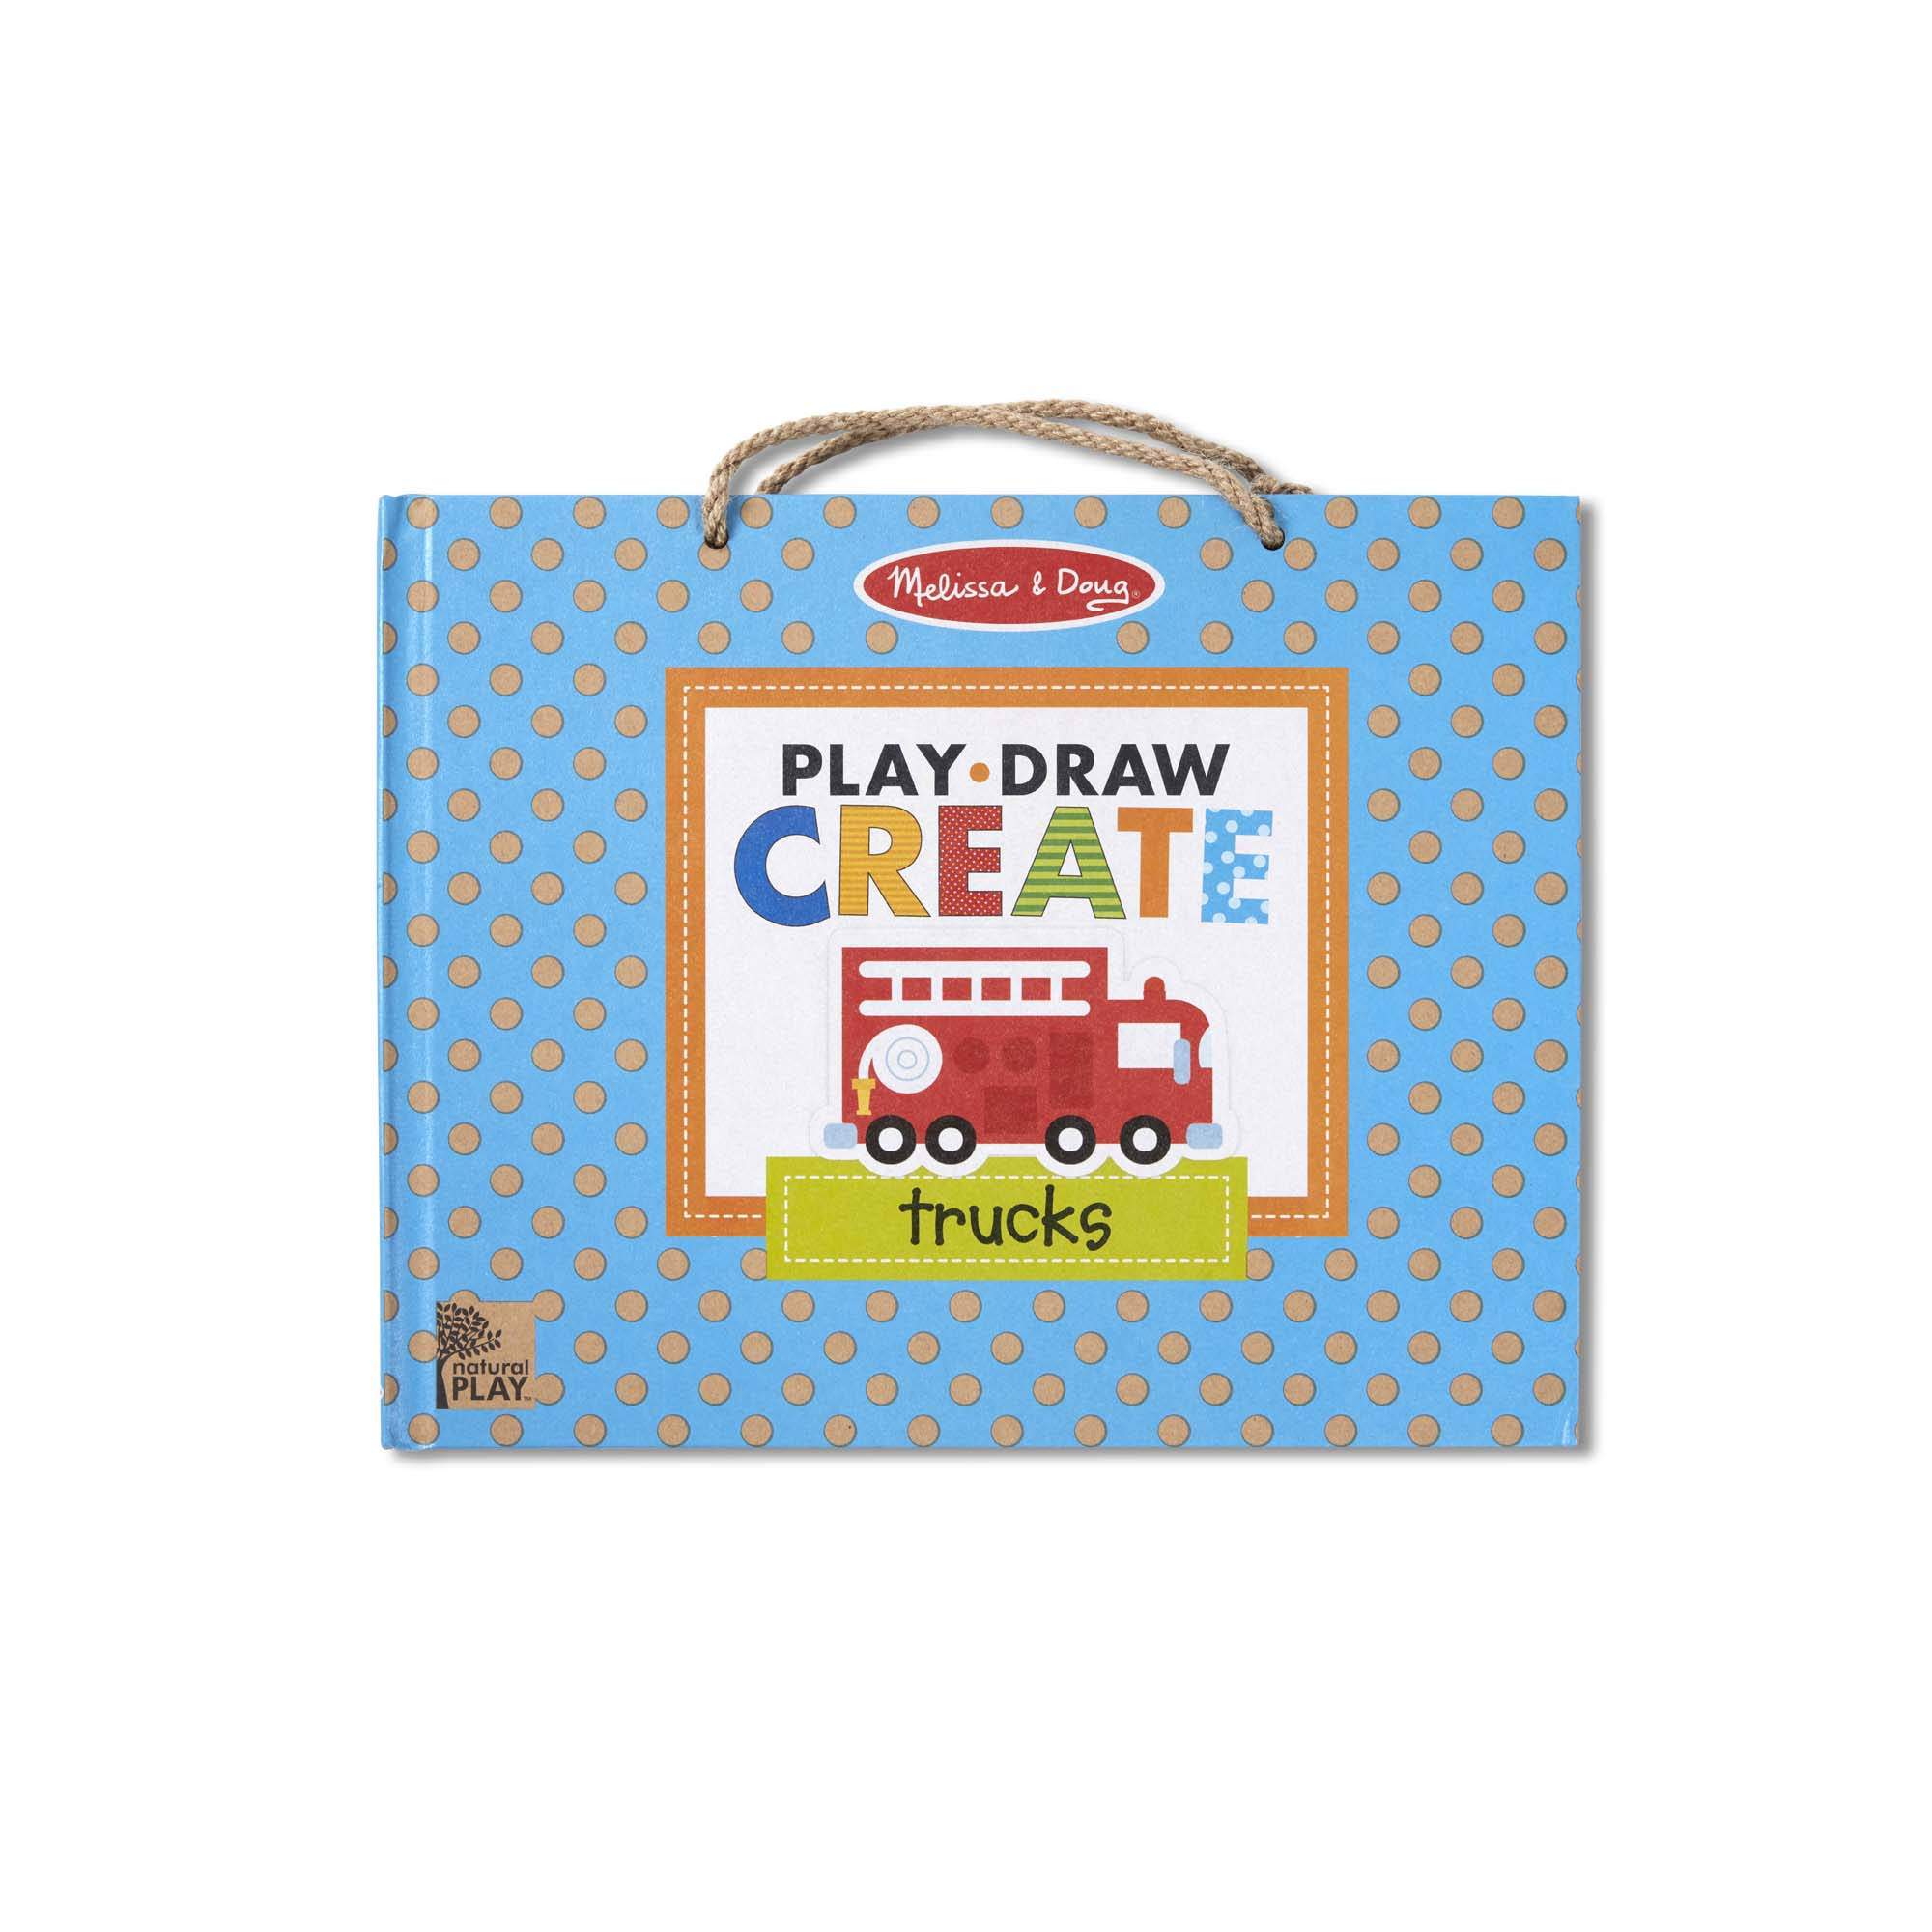 Melissa & Doug Play, Draw, Create Reusable Drawing & Magnet Kit - Trucks